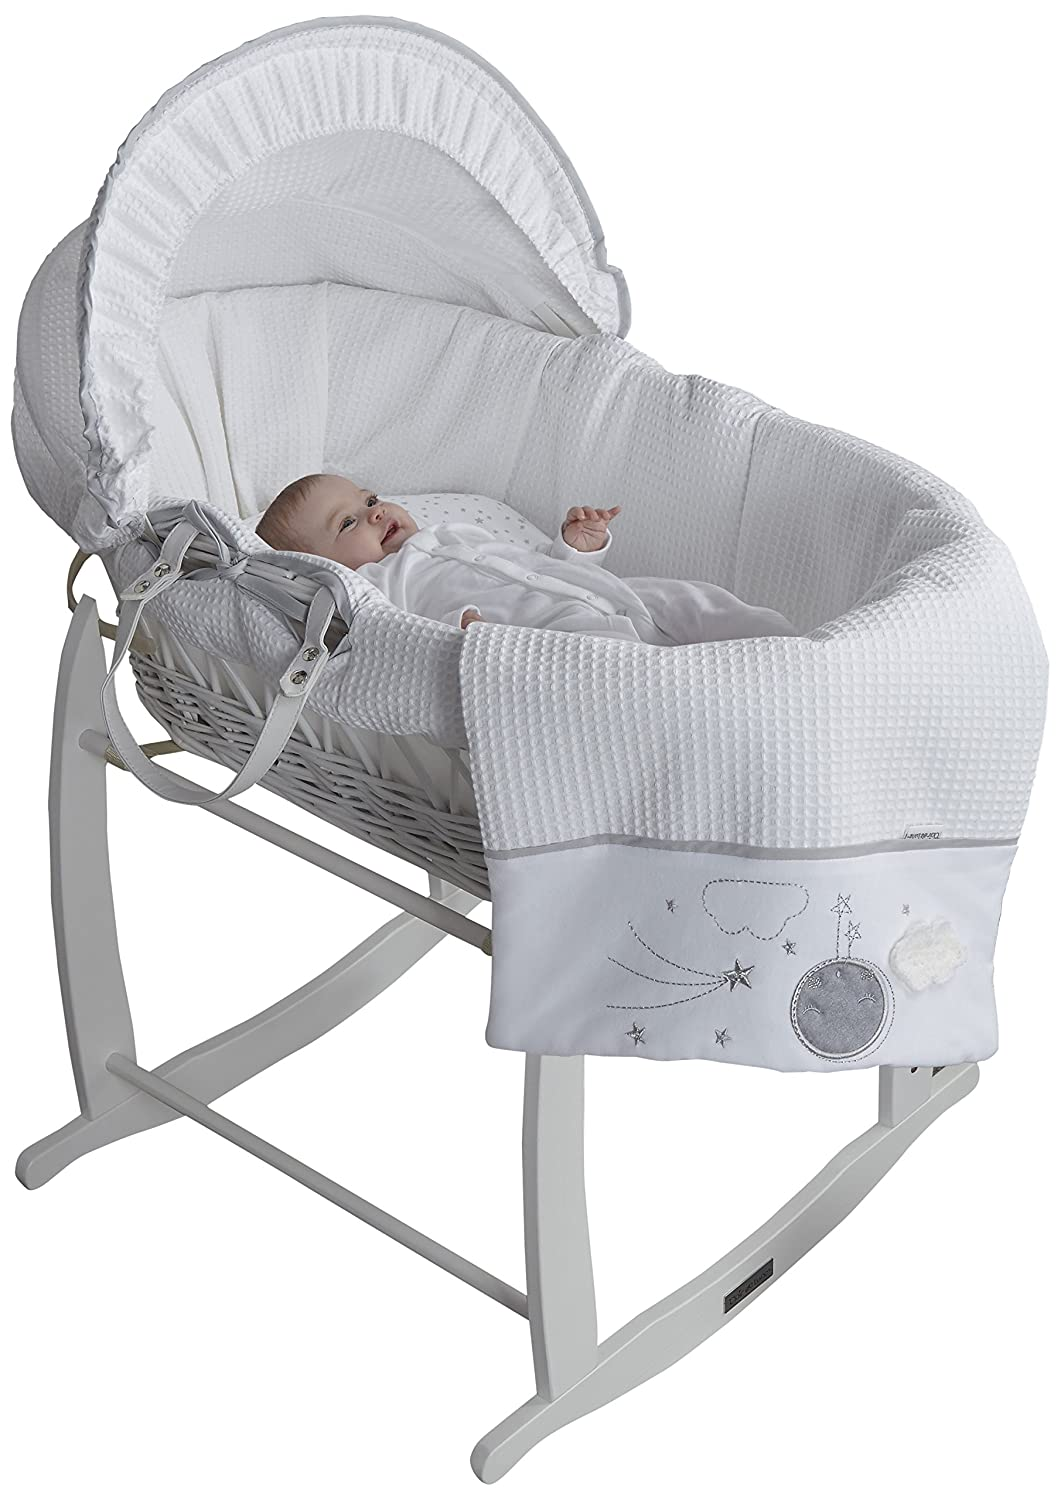 Clair de Lune Wicker Moses Basket, Grey/White, Over The Moon CL6062WGY